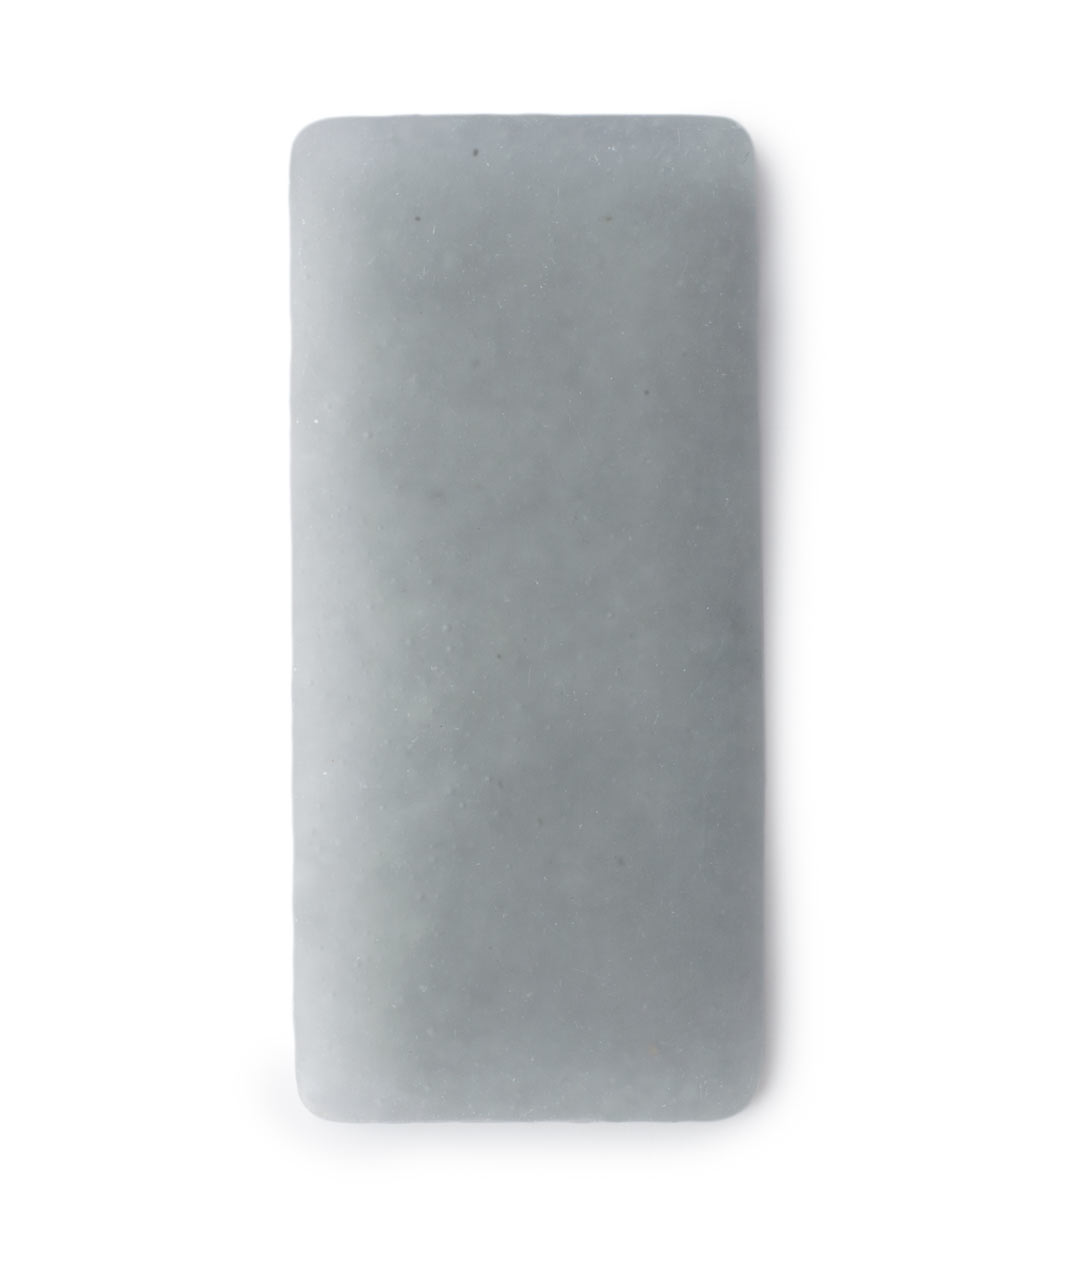 Fireclay-Tile-CRT-Recycled-Tiles-6